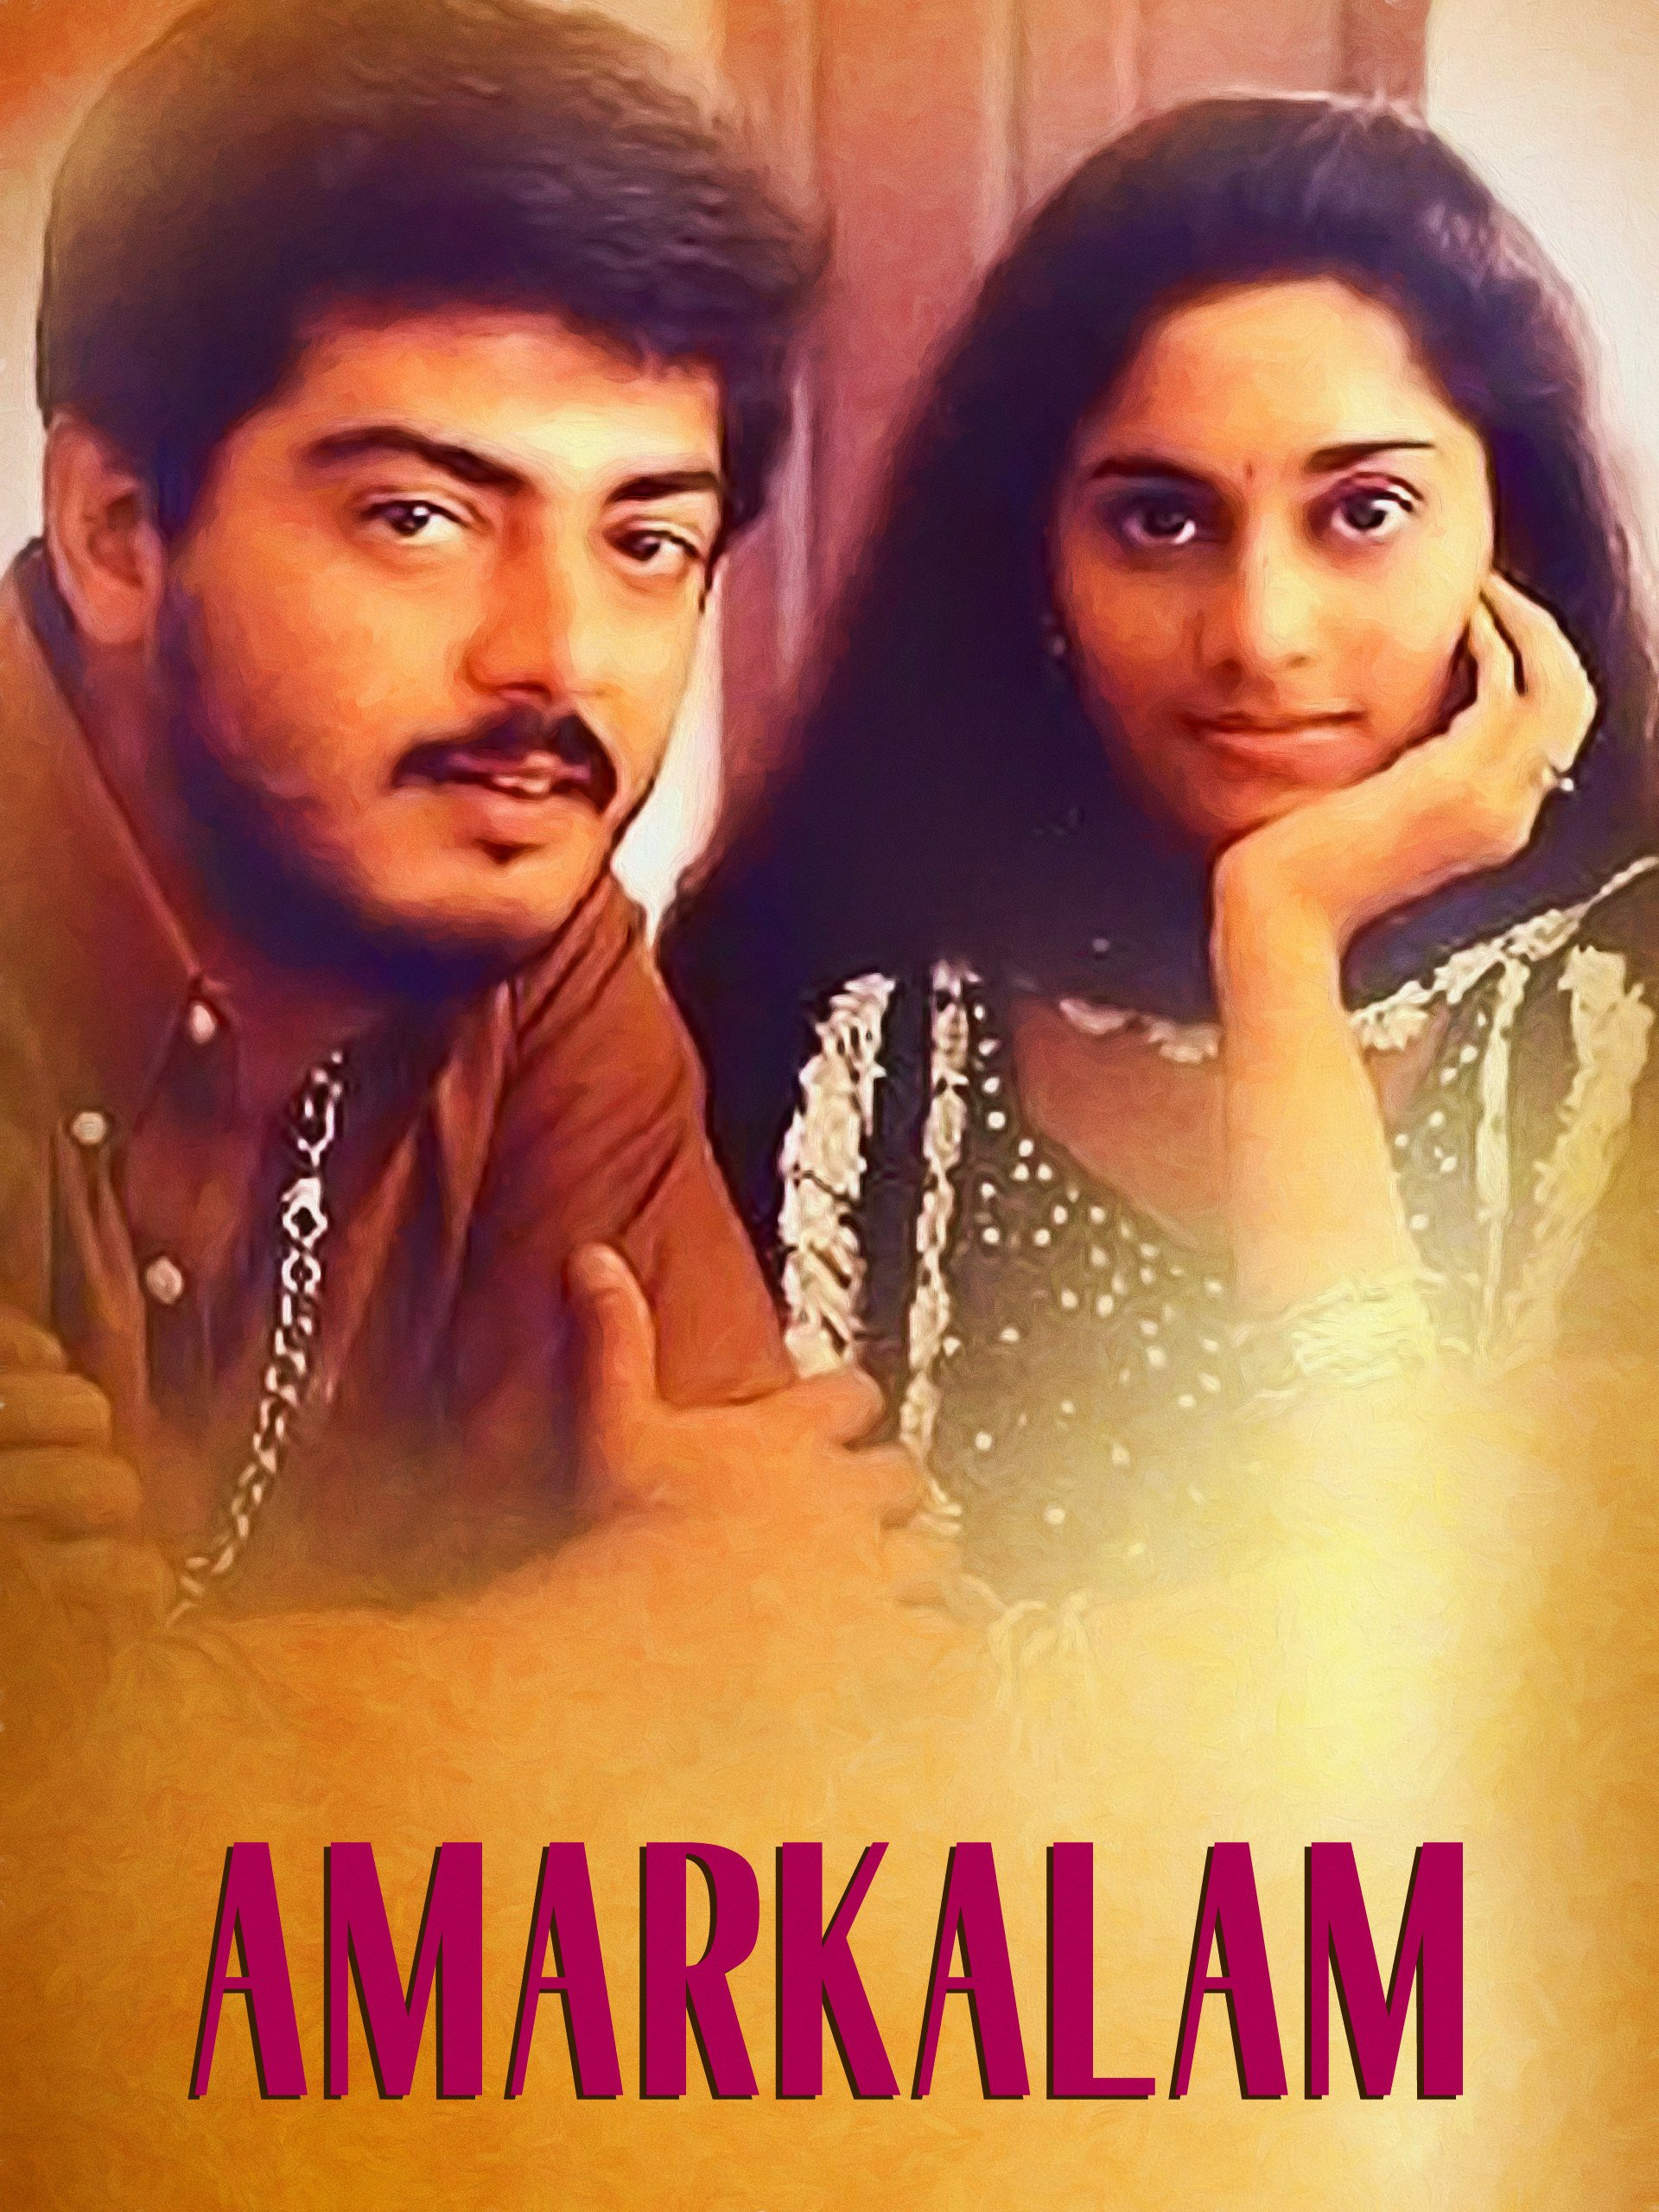 Watch Amarkalam | Prime Video